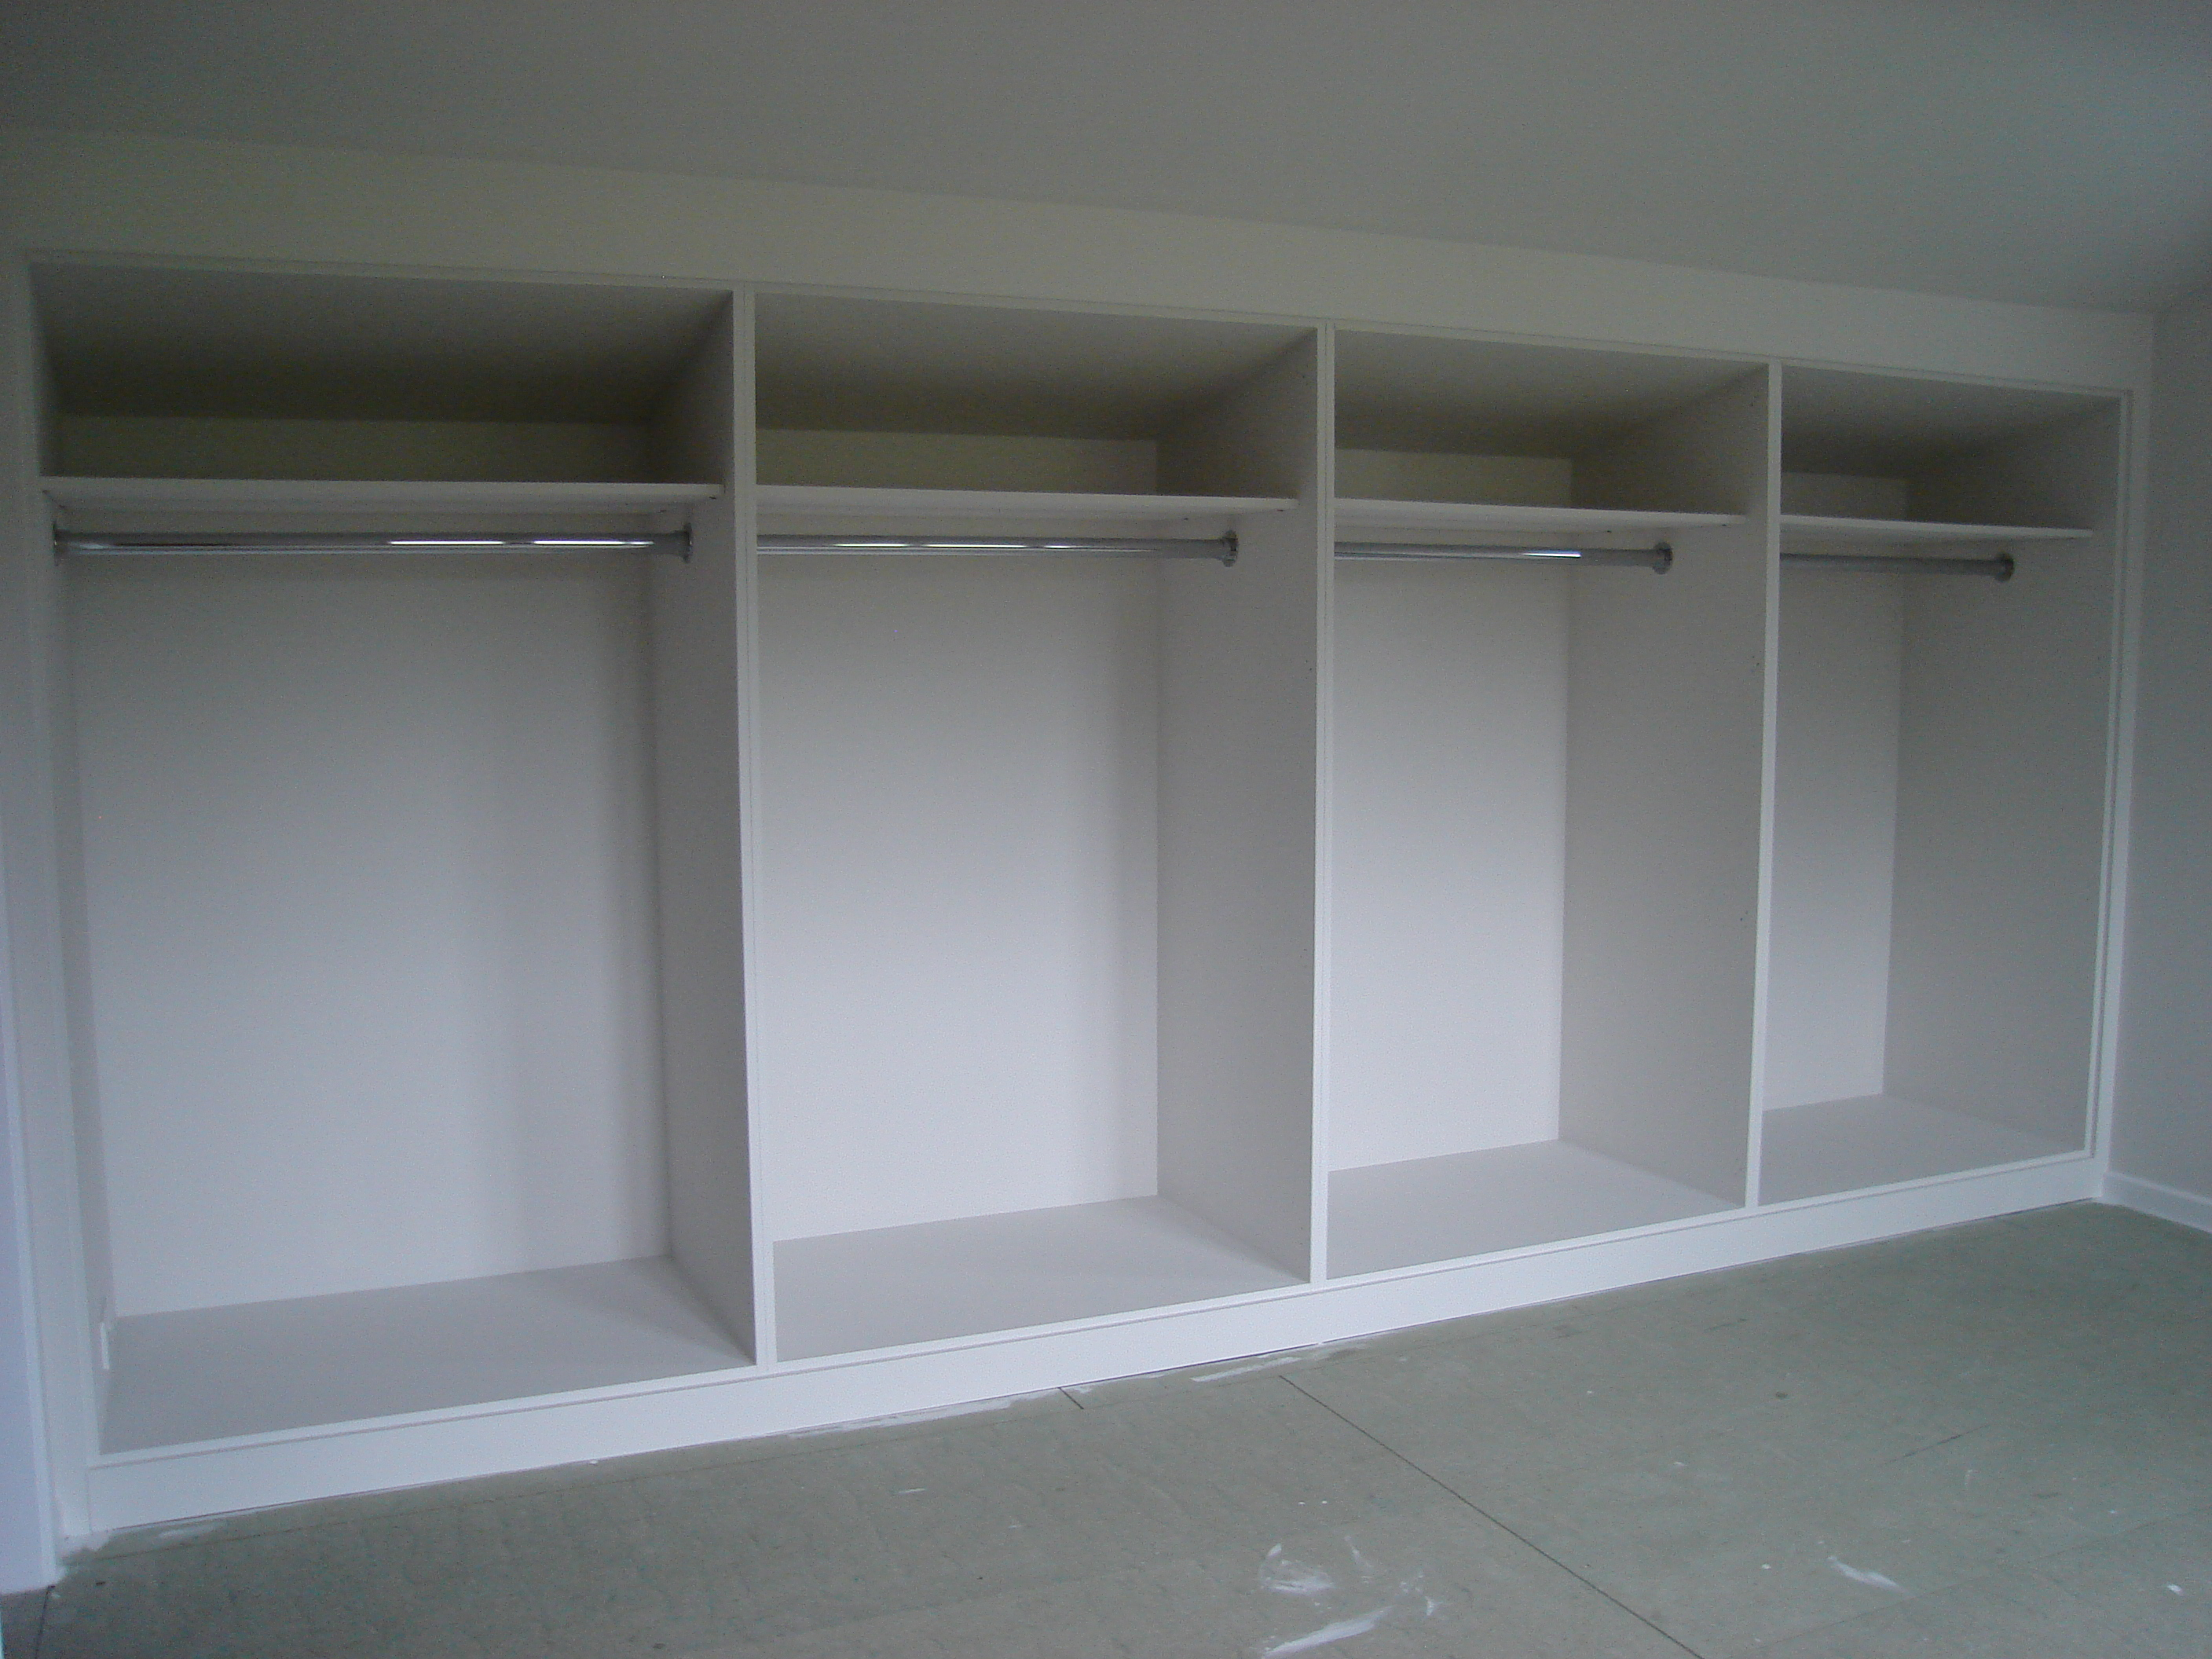 services your custom built ikal choose wardrobes in perth wardrobe you kitchens where style